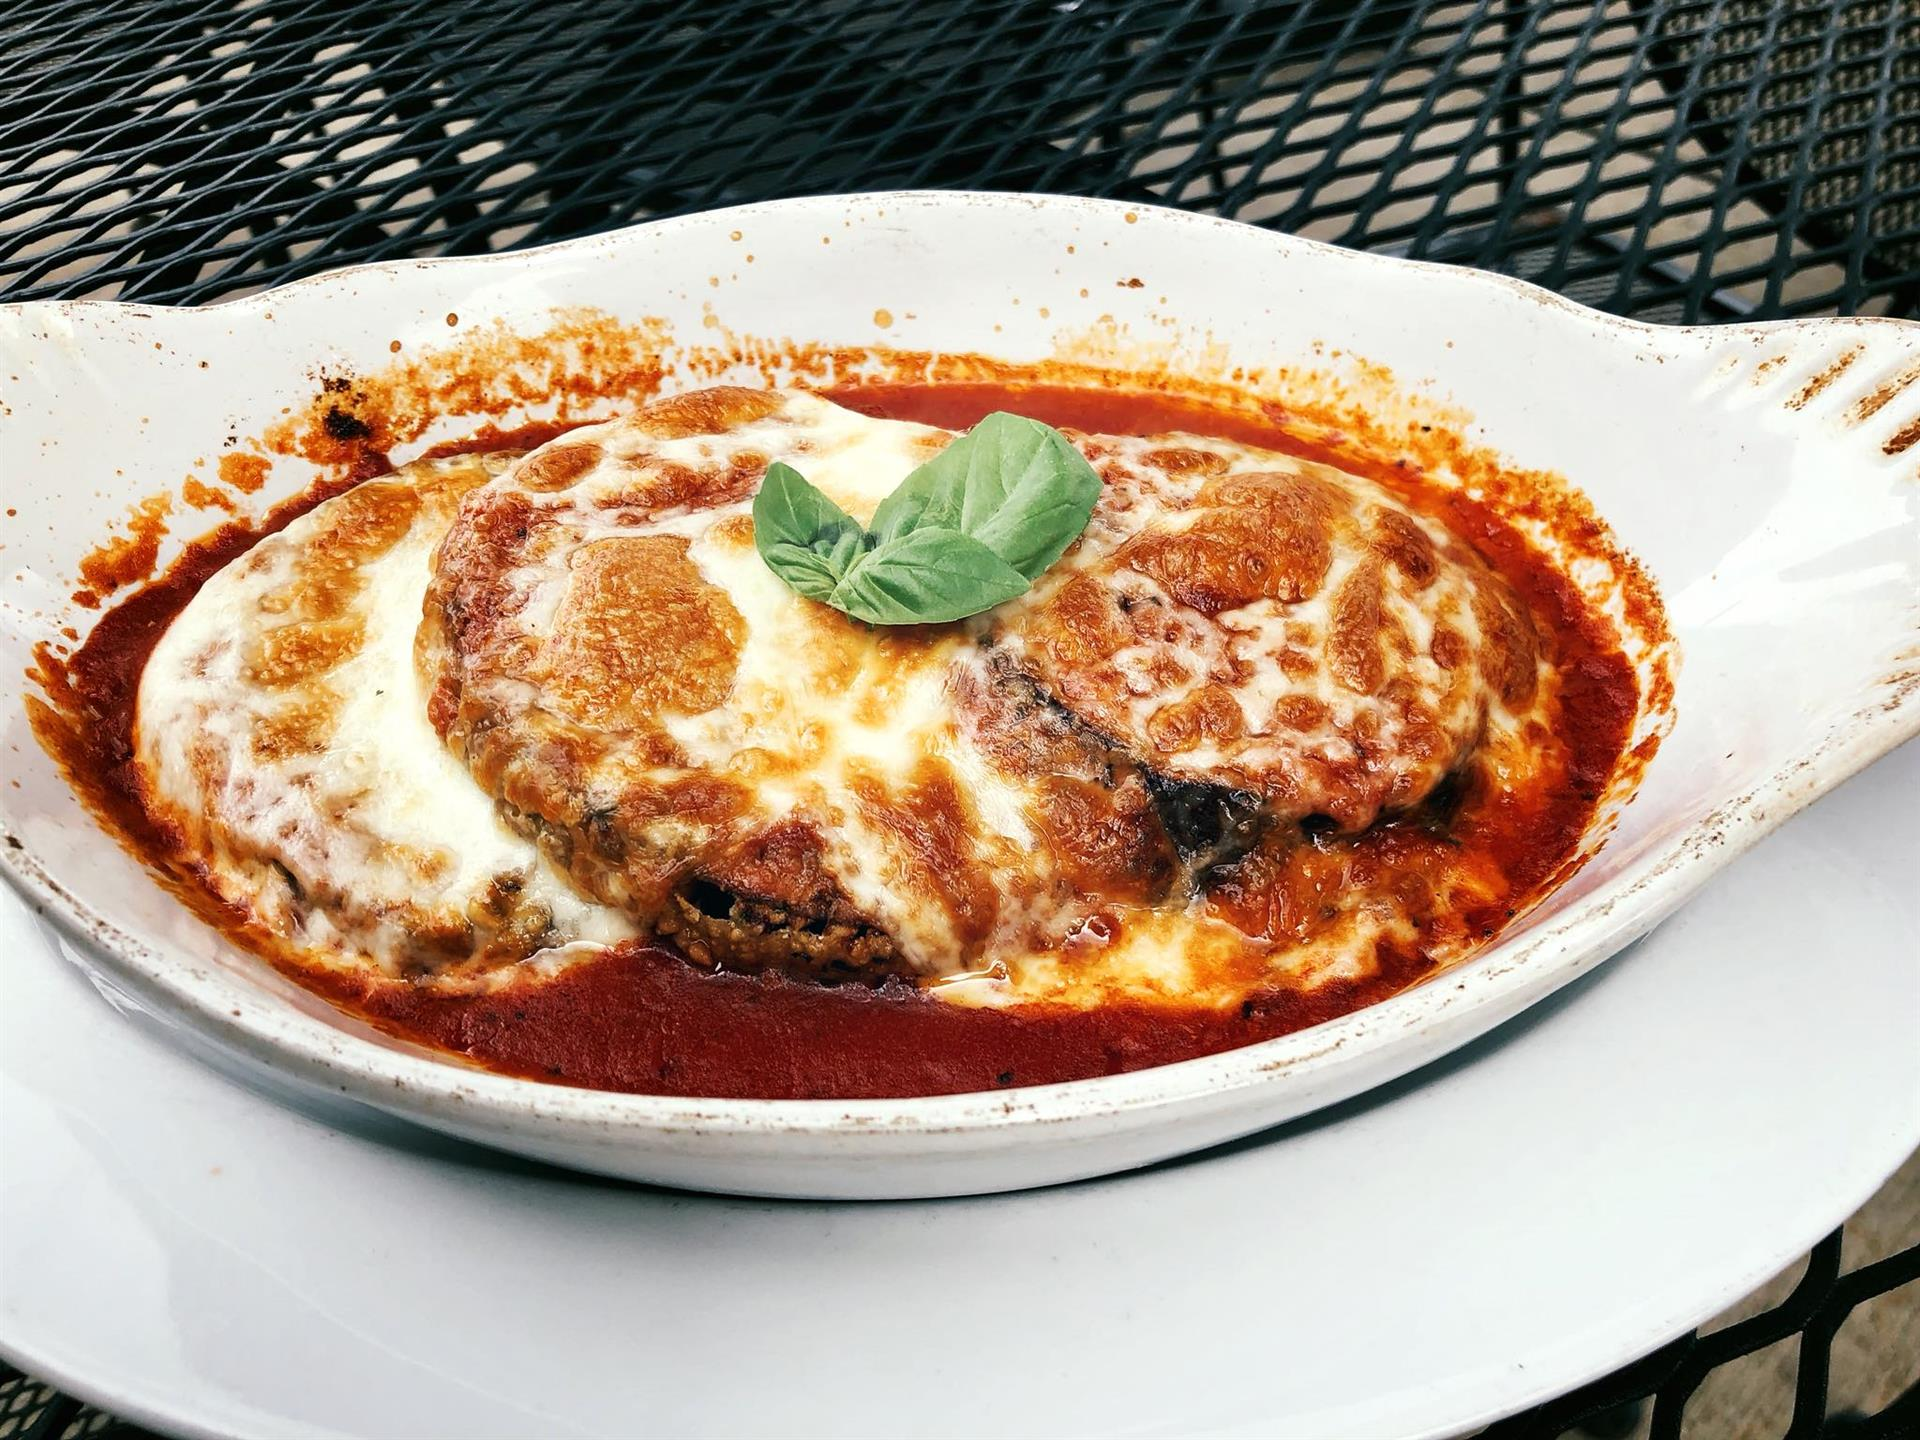 Eggplant Parmigiana covered in metled cheese and topped with sauce